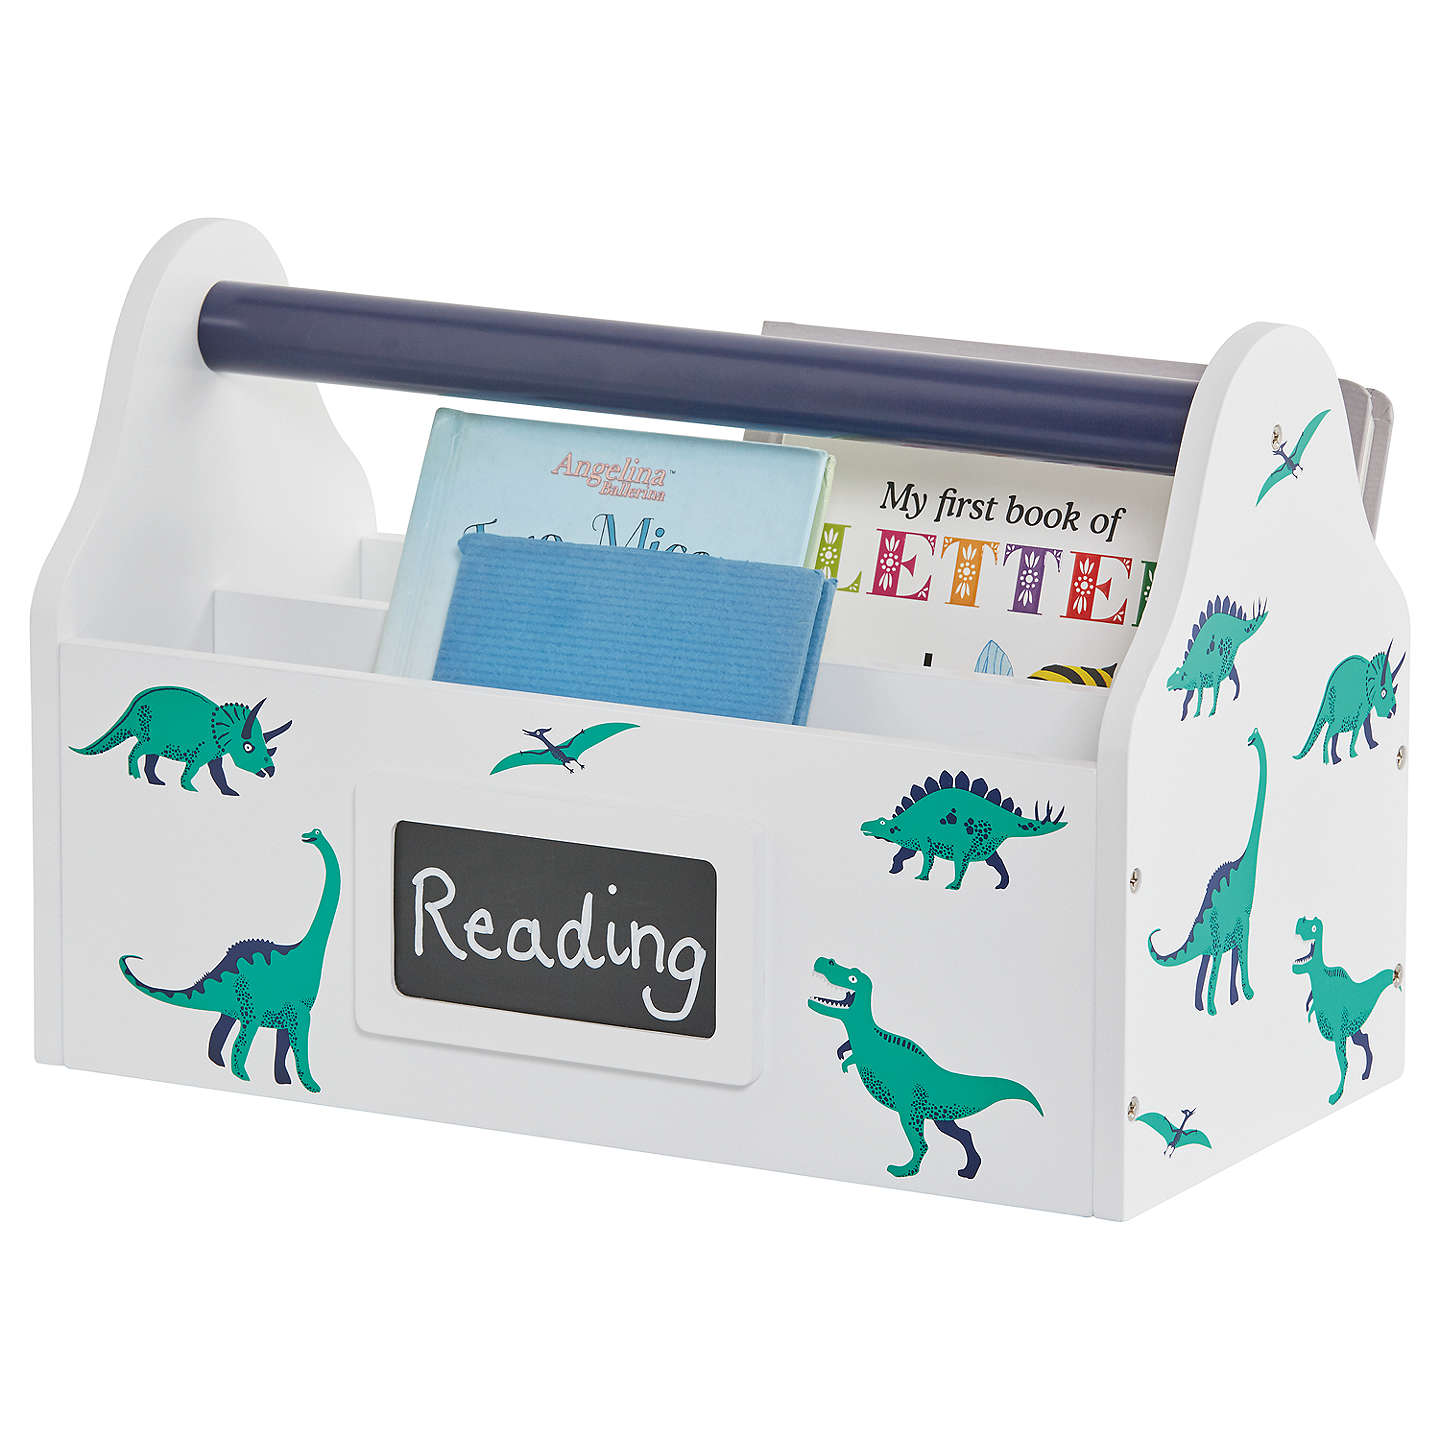 Great Little Trading Co Dinosaur Carry Caddy, Multi at John Lewis